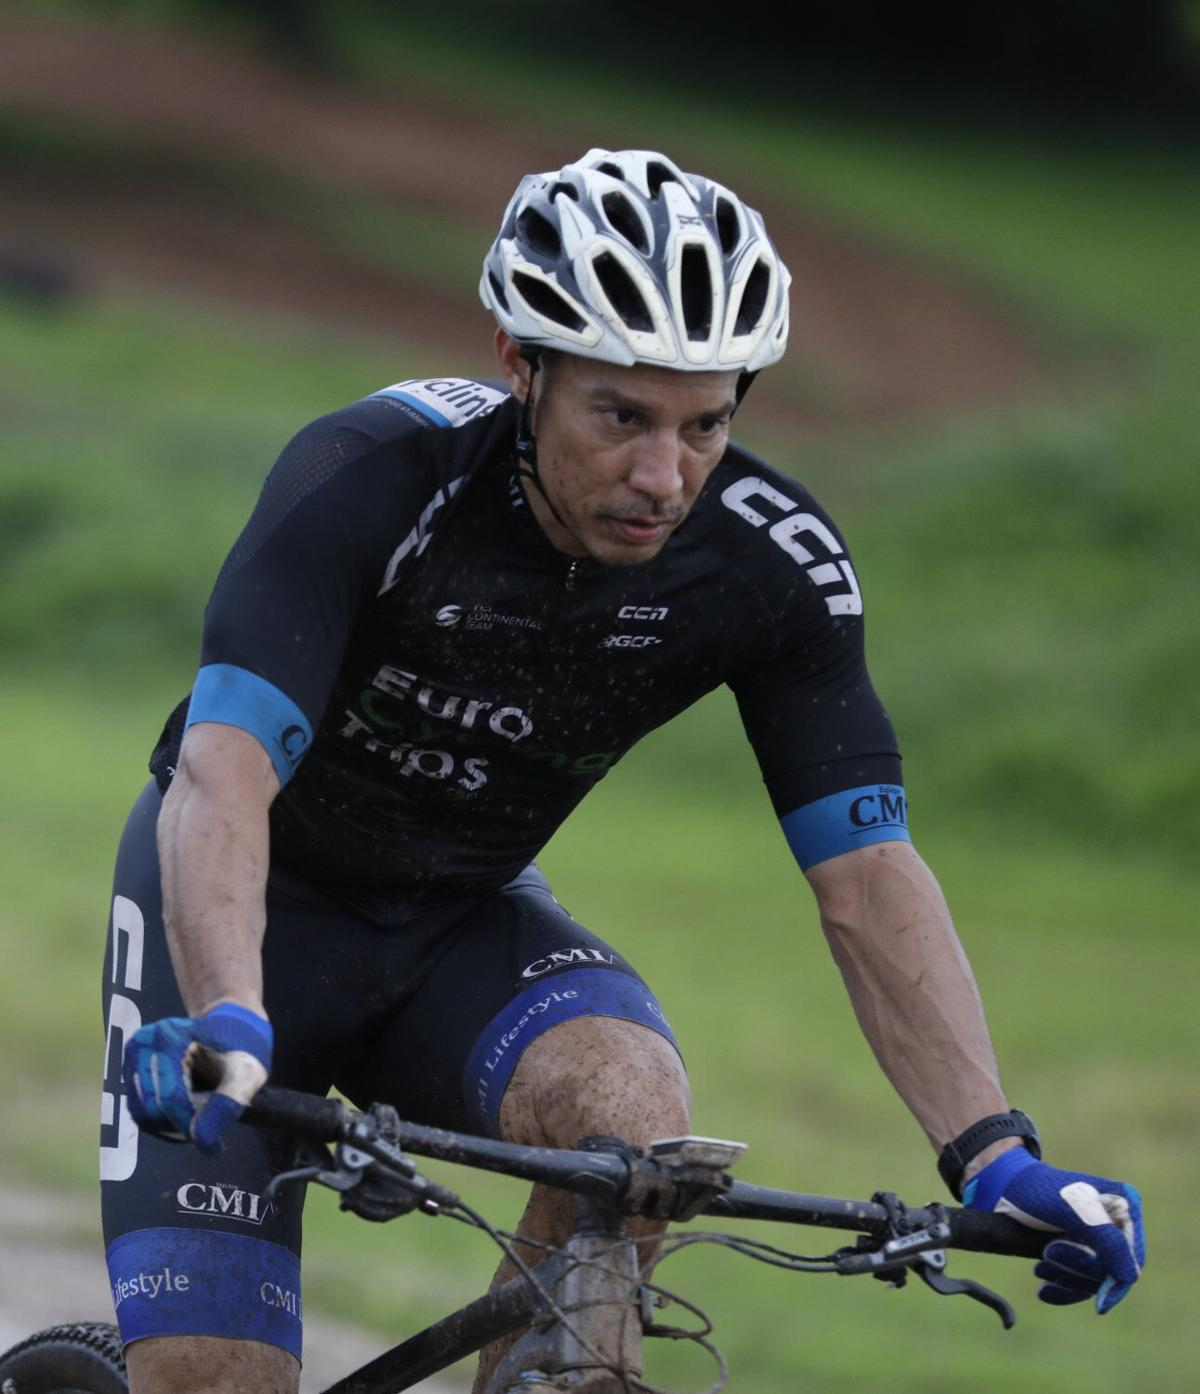 More than 100 cyclists test mettle in endurance race